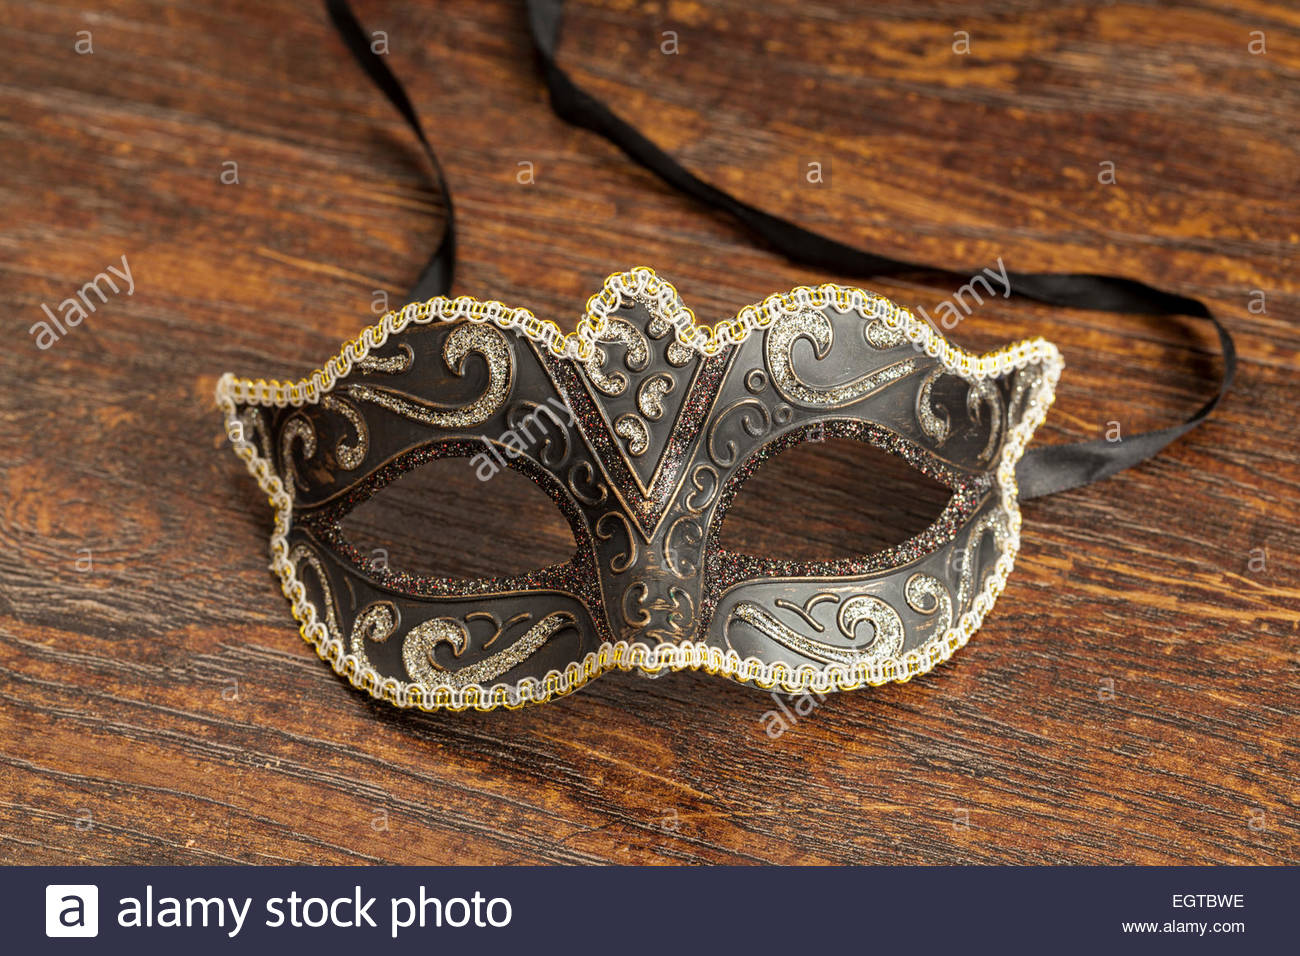 Black and Gold Theatrical Mask - Stock Image